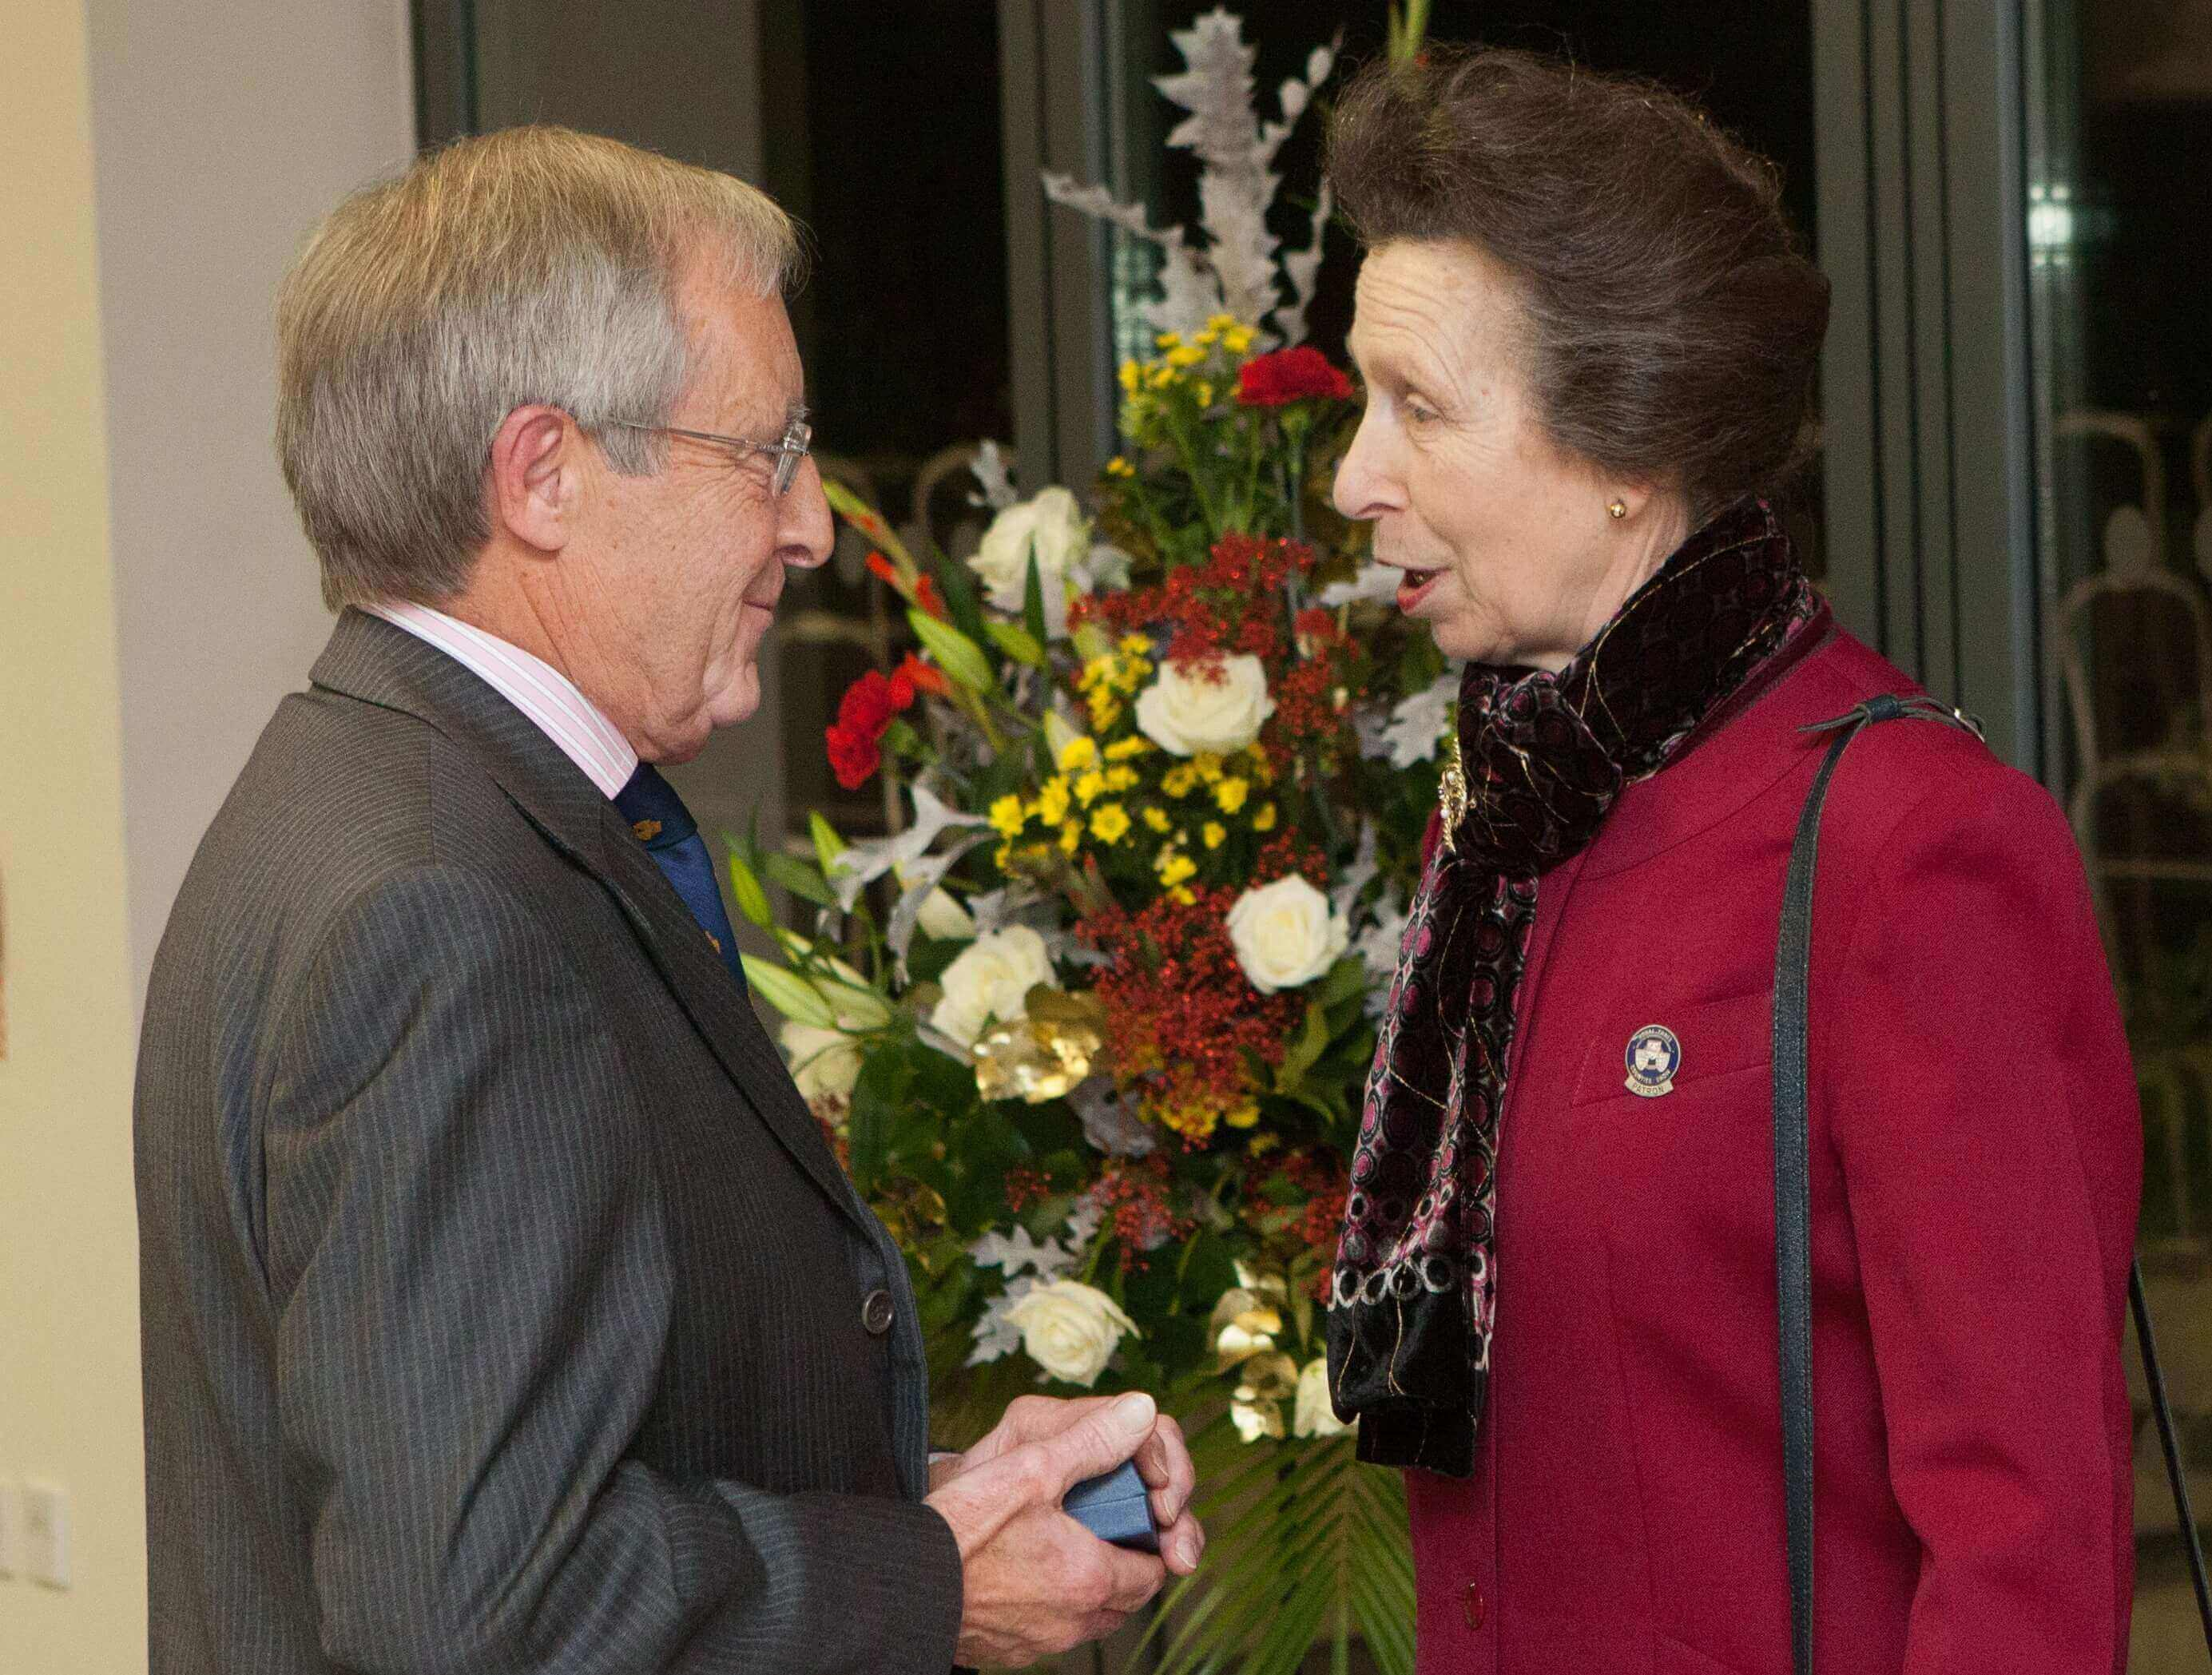 Chris Southgate receiving his Honorary Life Governorship from HRH The Princess Royal.jpg